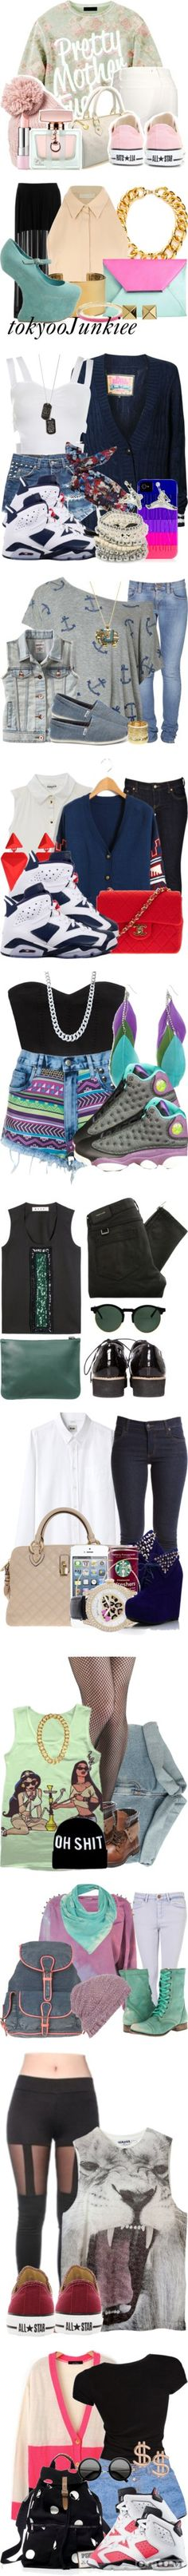 """""""3 * These sets are my favorite of all times!!!! * 3"""" by xmonishax ❤ liked on Polyvore"""